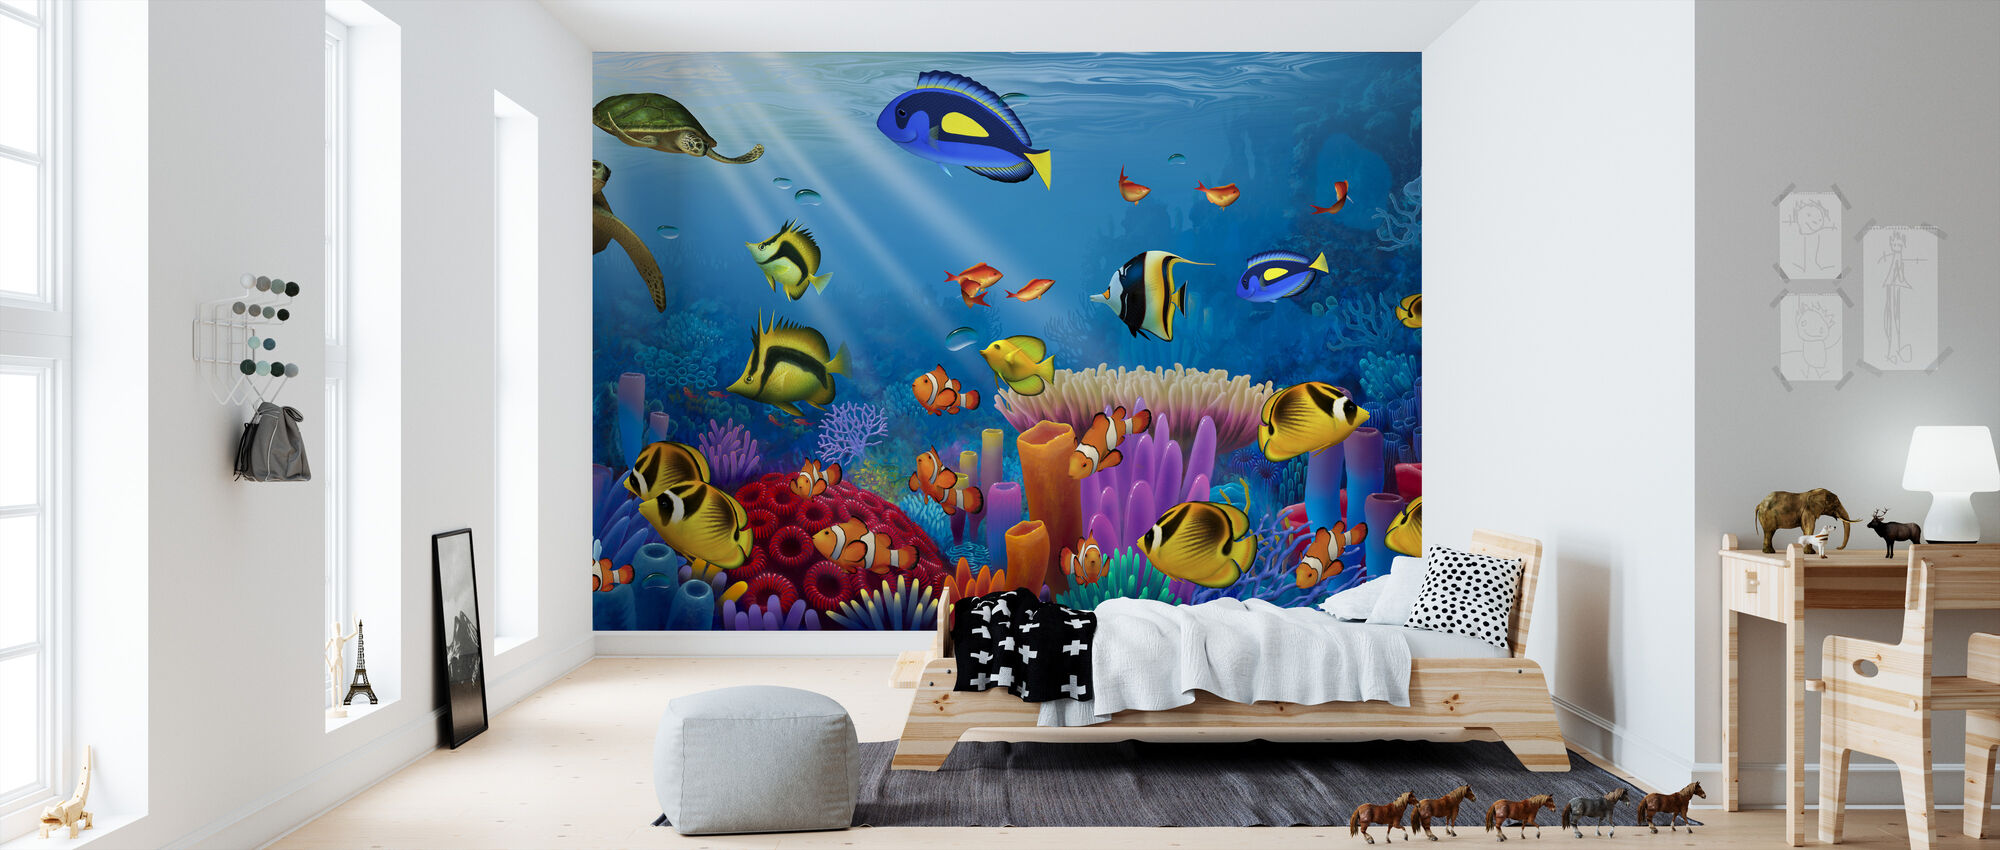 Sea of Life - Wallpaper - Kids Room